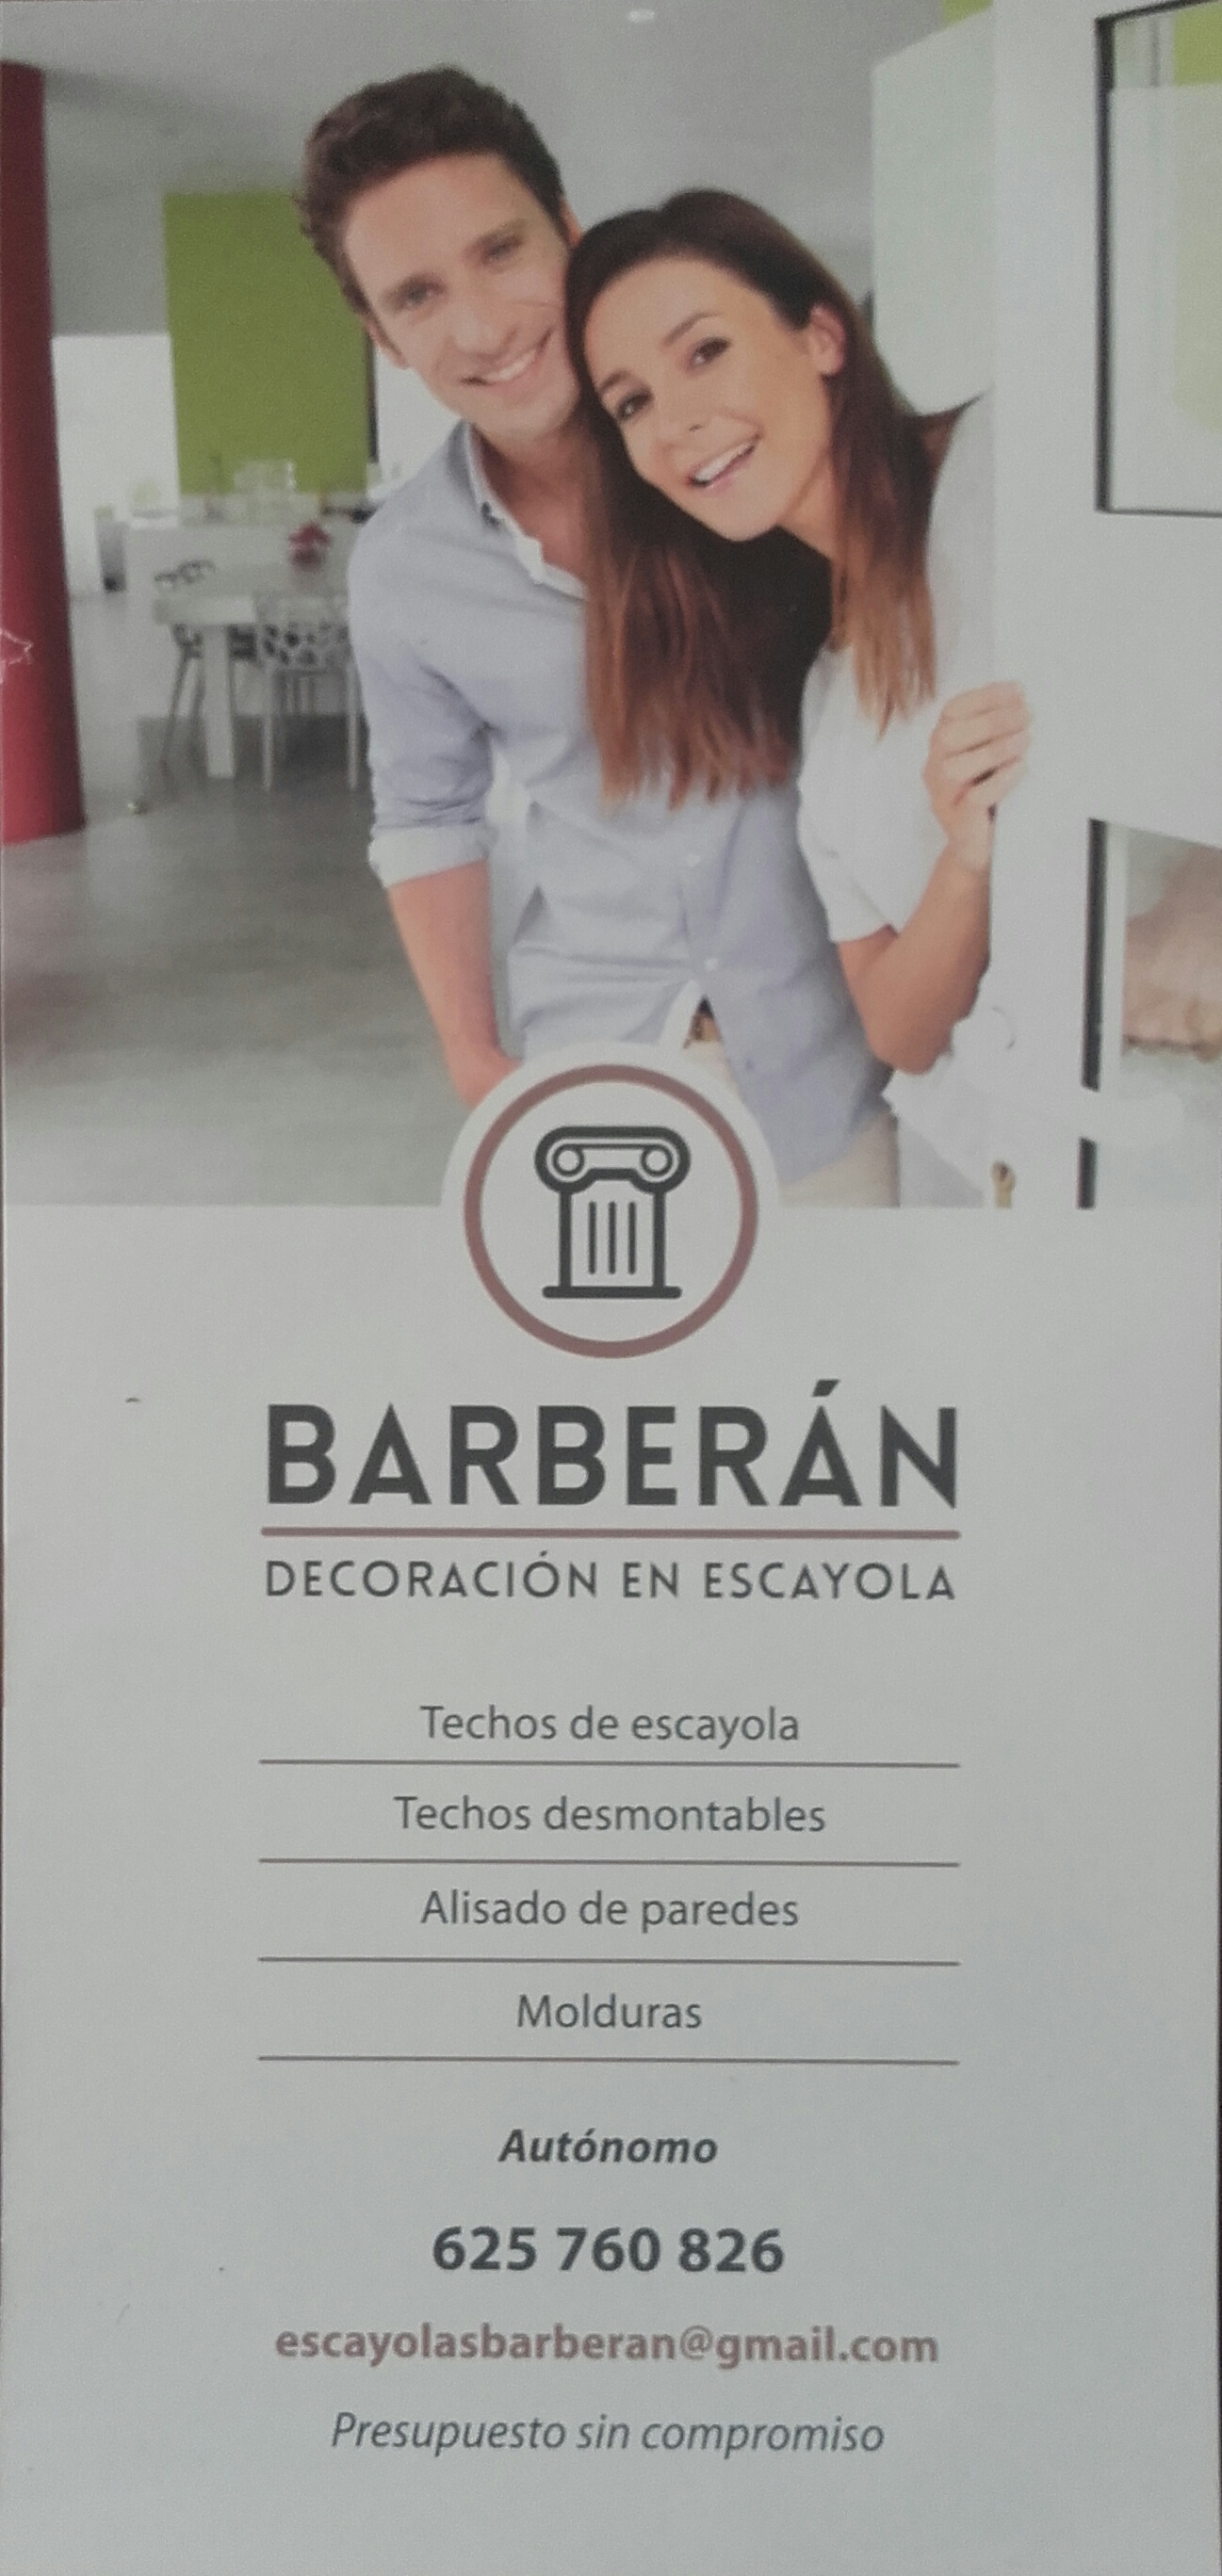 Decoración En Escayola Barberan